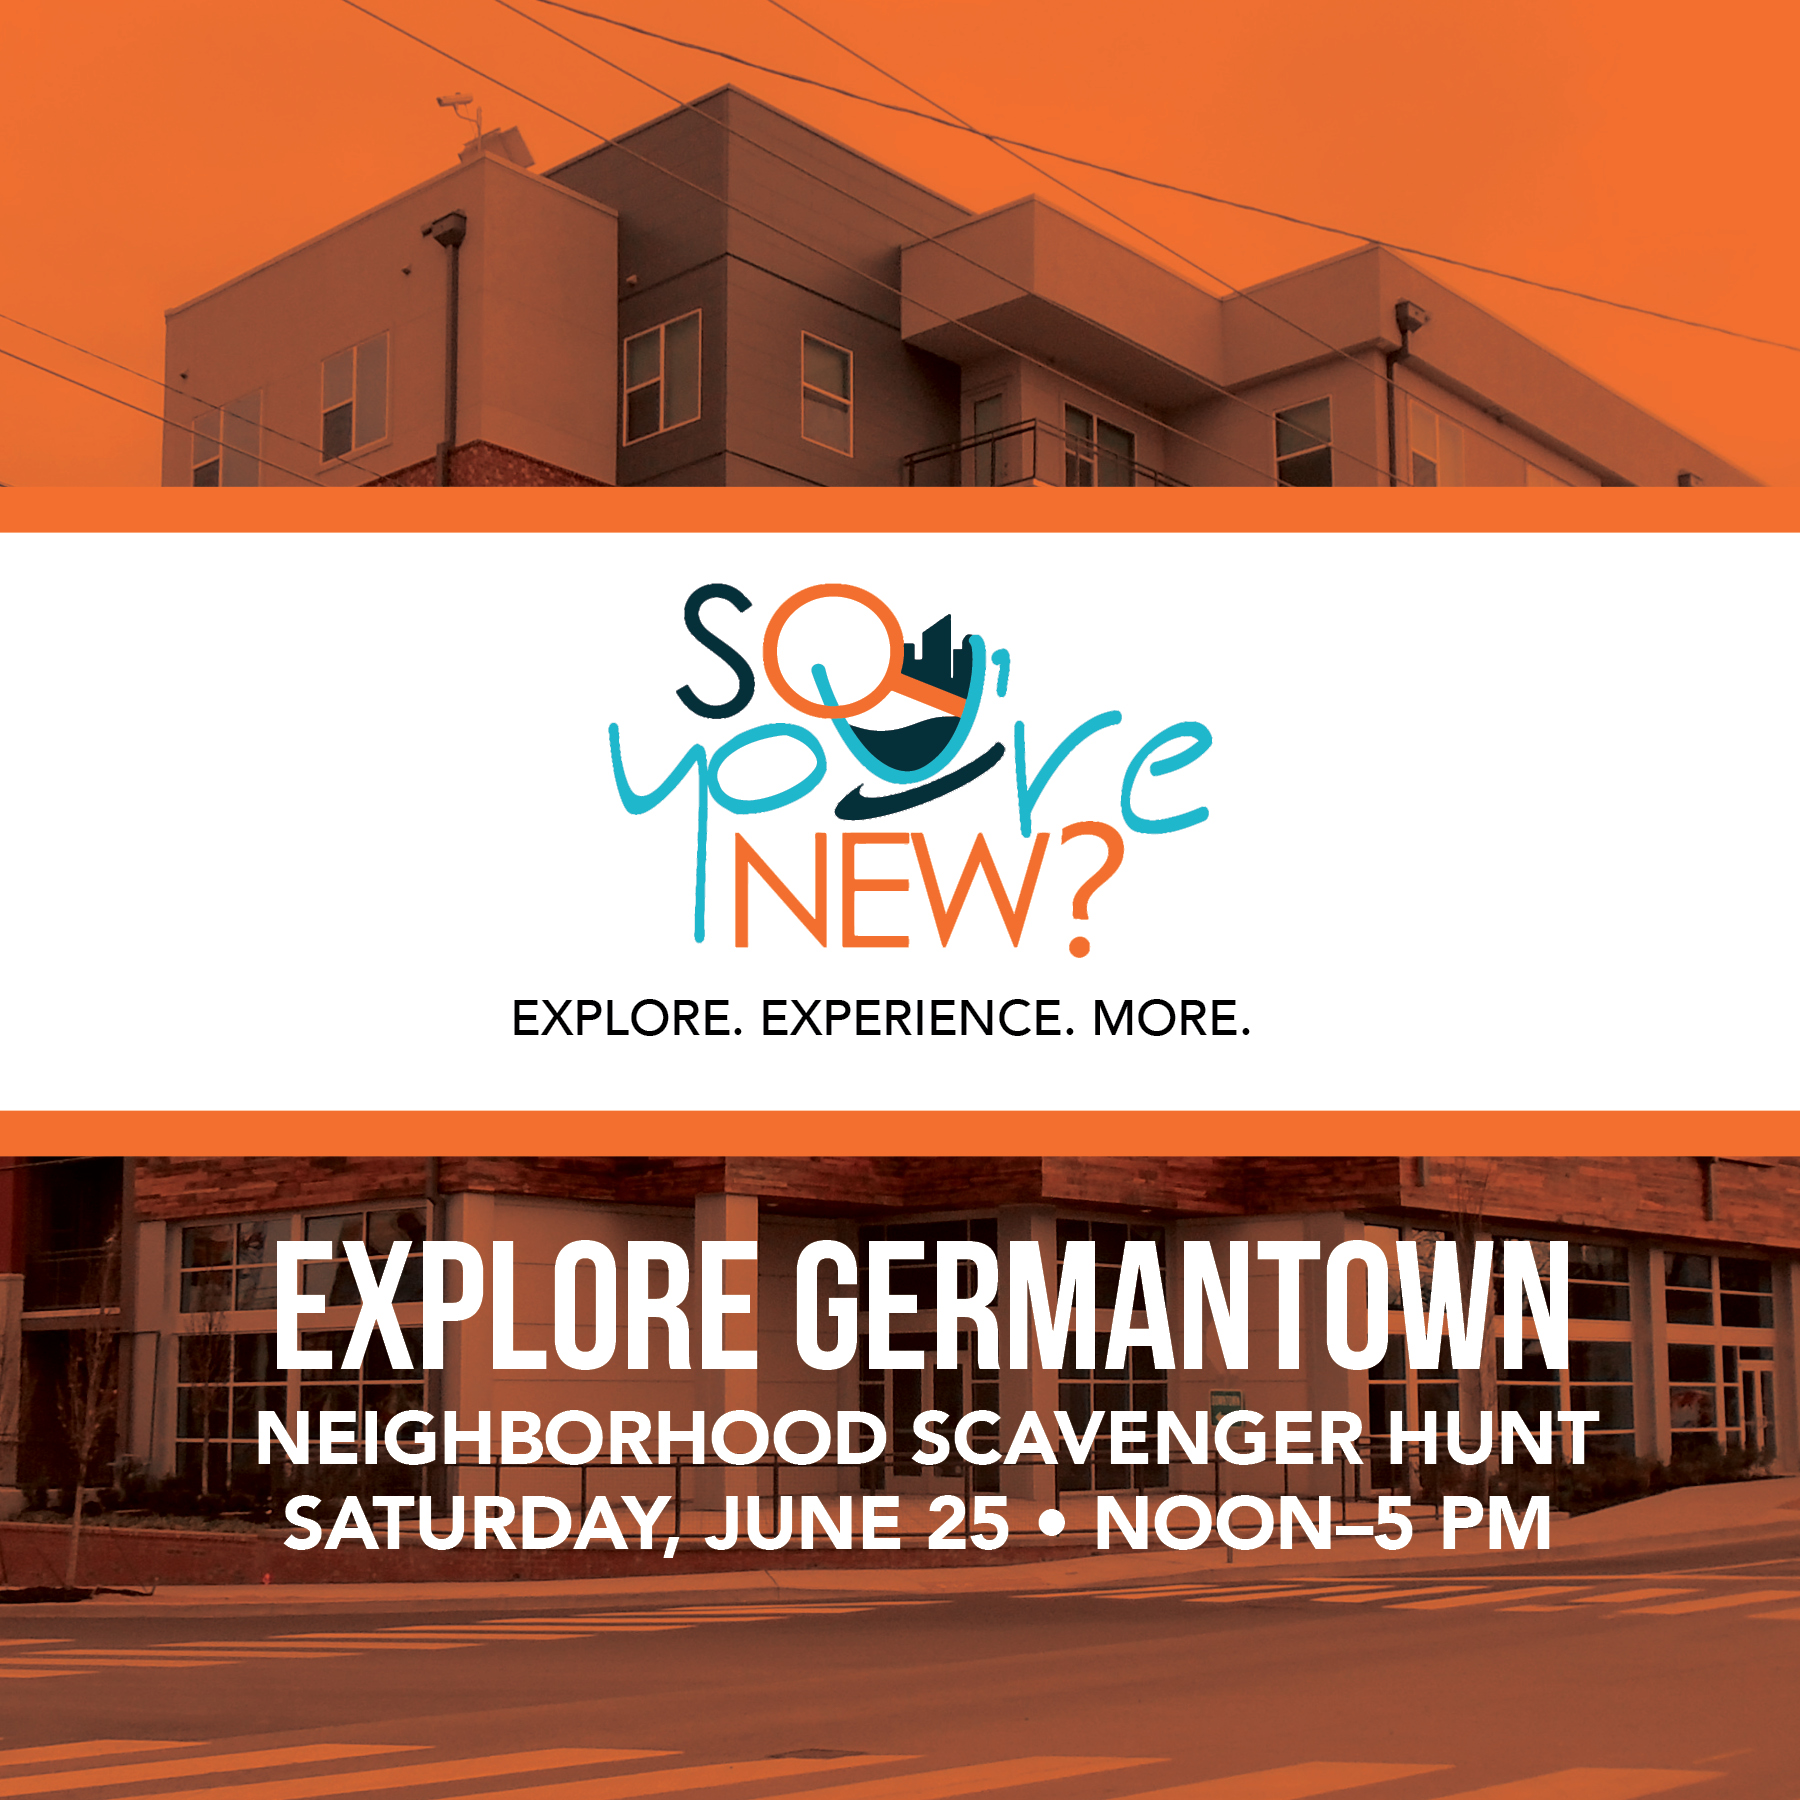 Germantown-Scavengerhunt